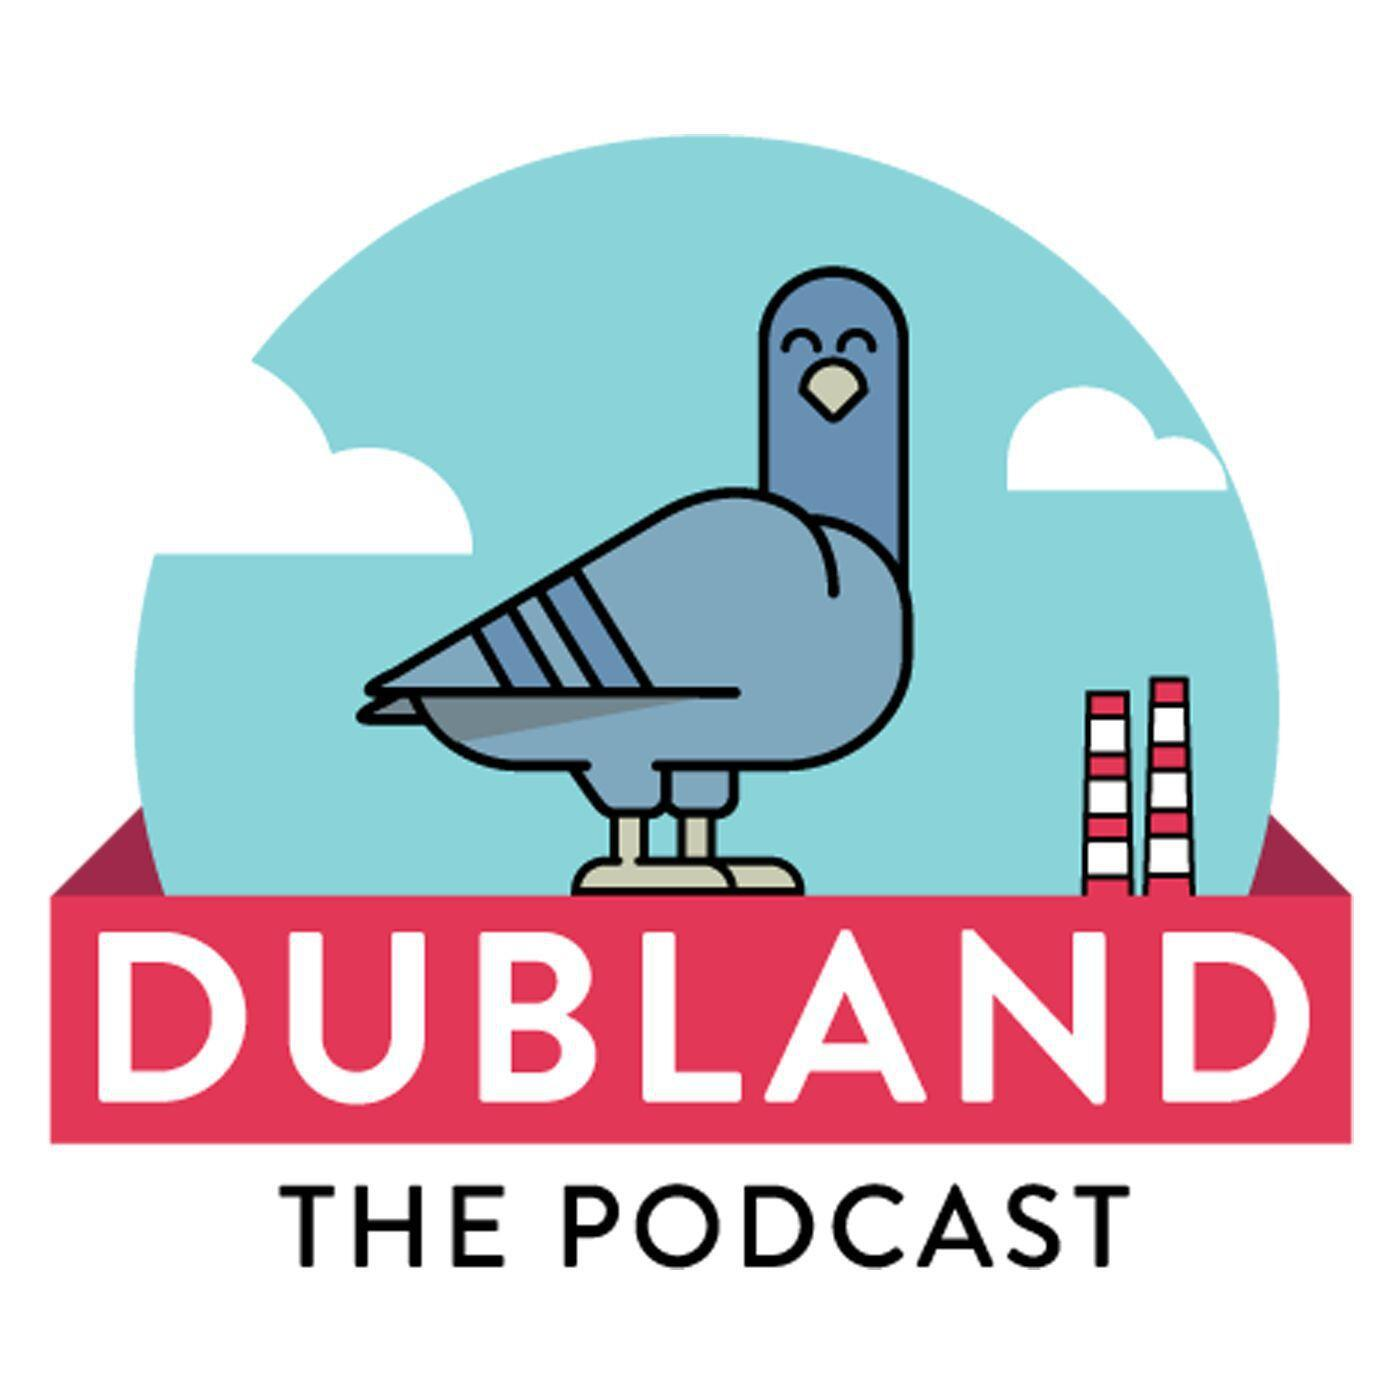 66 DUBLAND The podcast